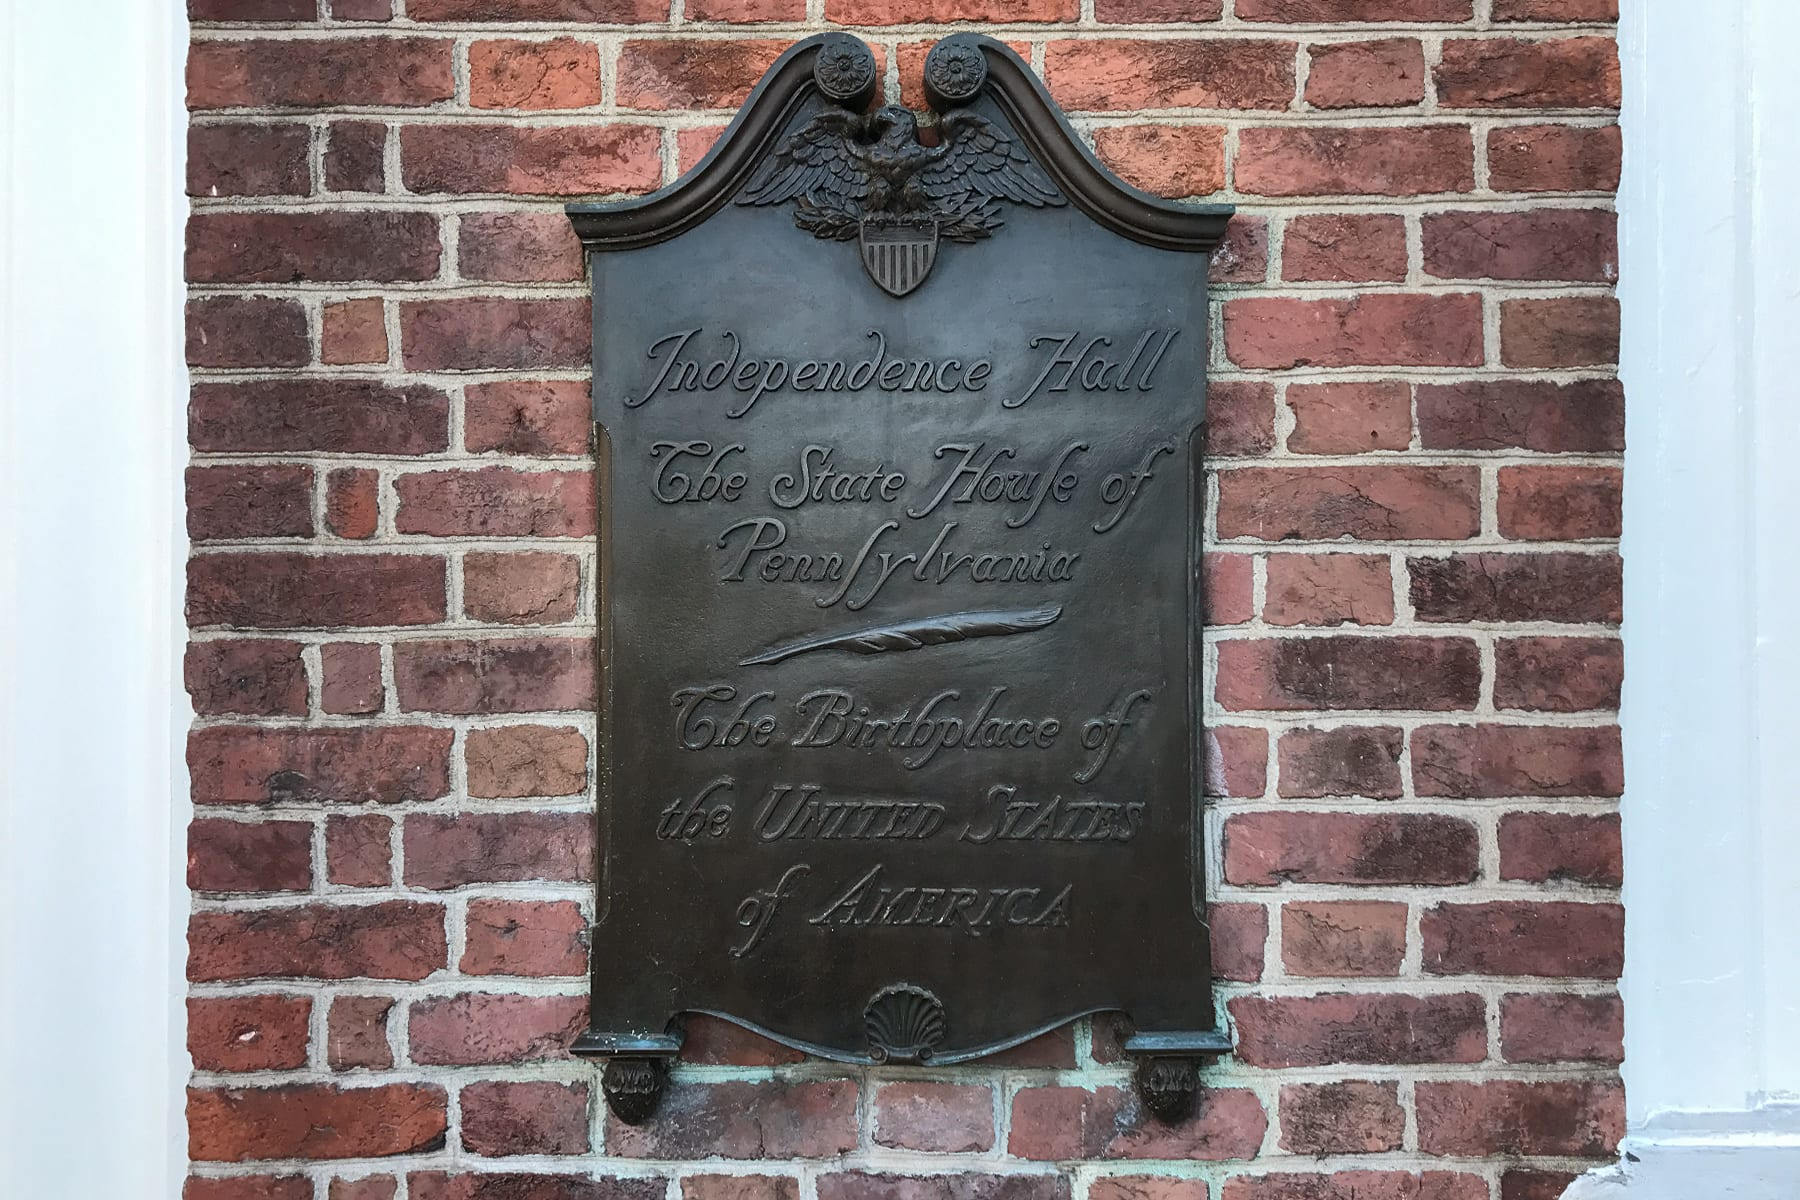 06-PA-journey09-independencehall01.jpg